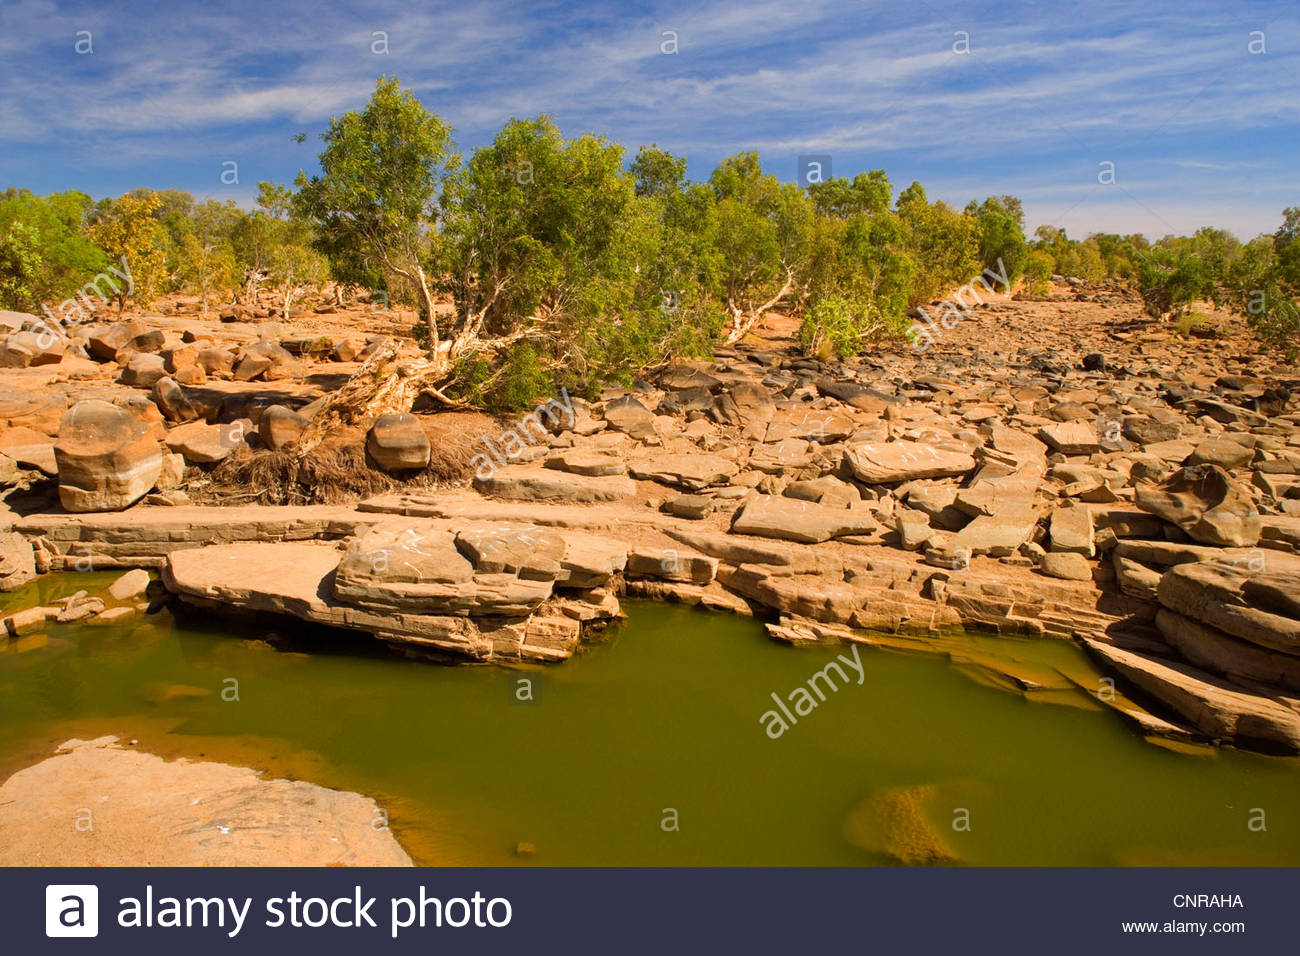 AustralienDrought - nearly completely dried out riverbed, which is evidence of drought , Australia, Western Australia - Stock Image